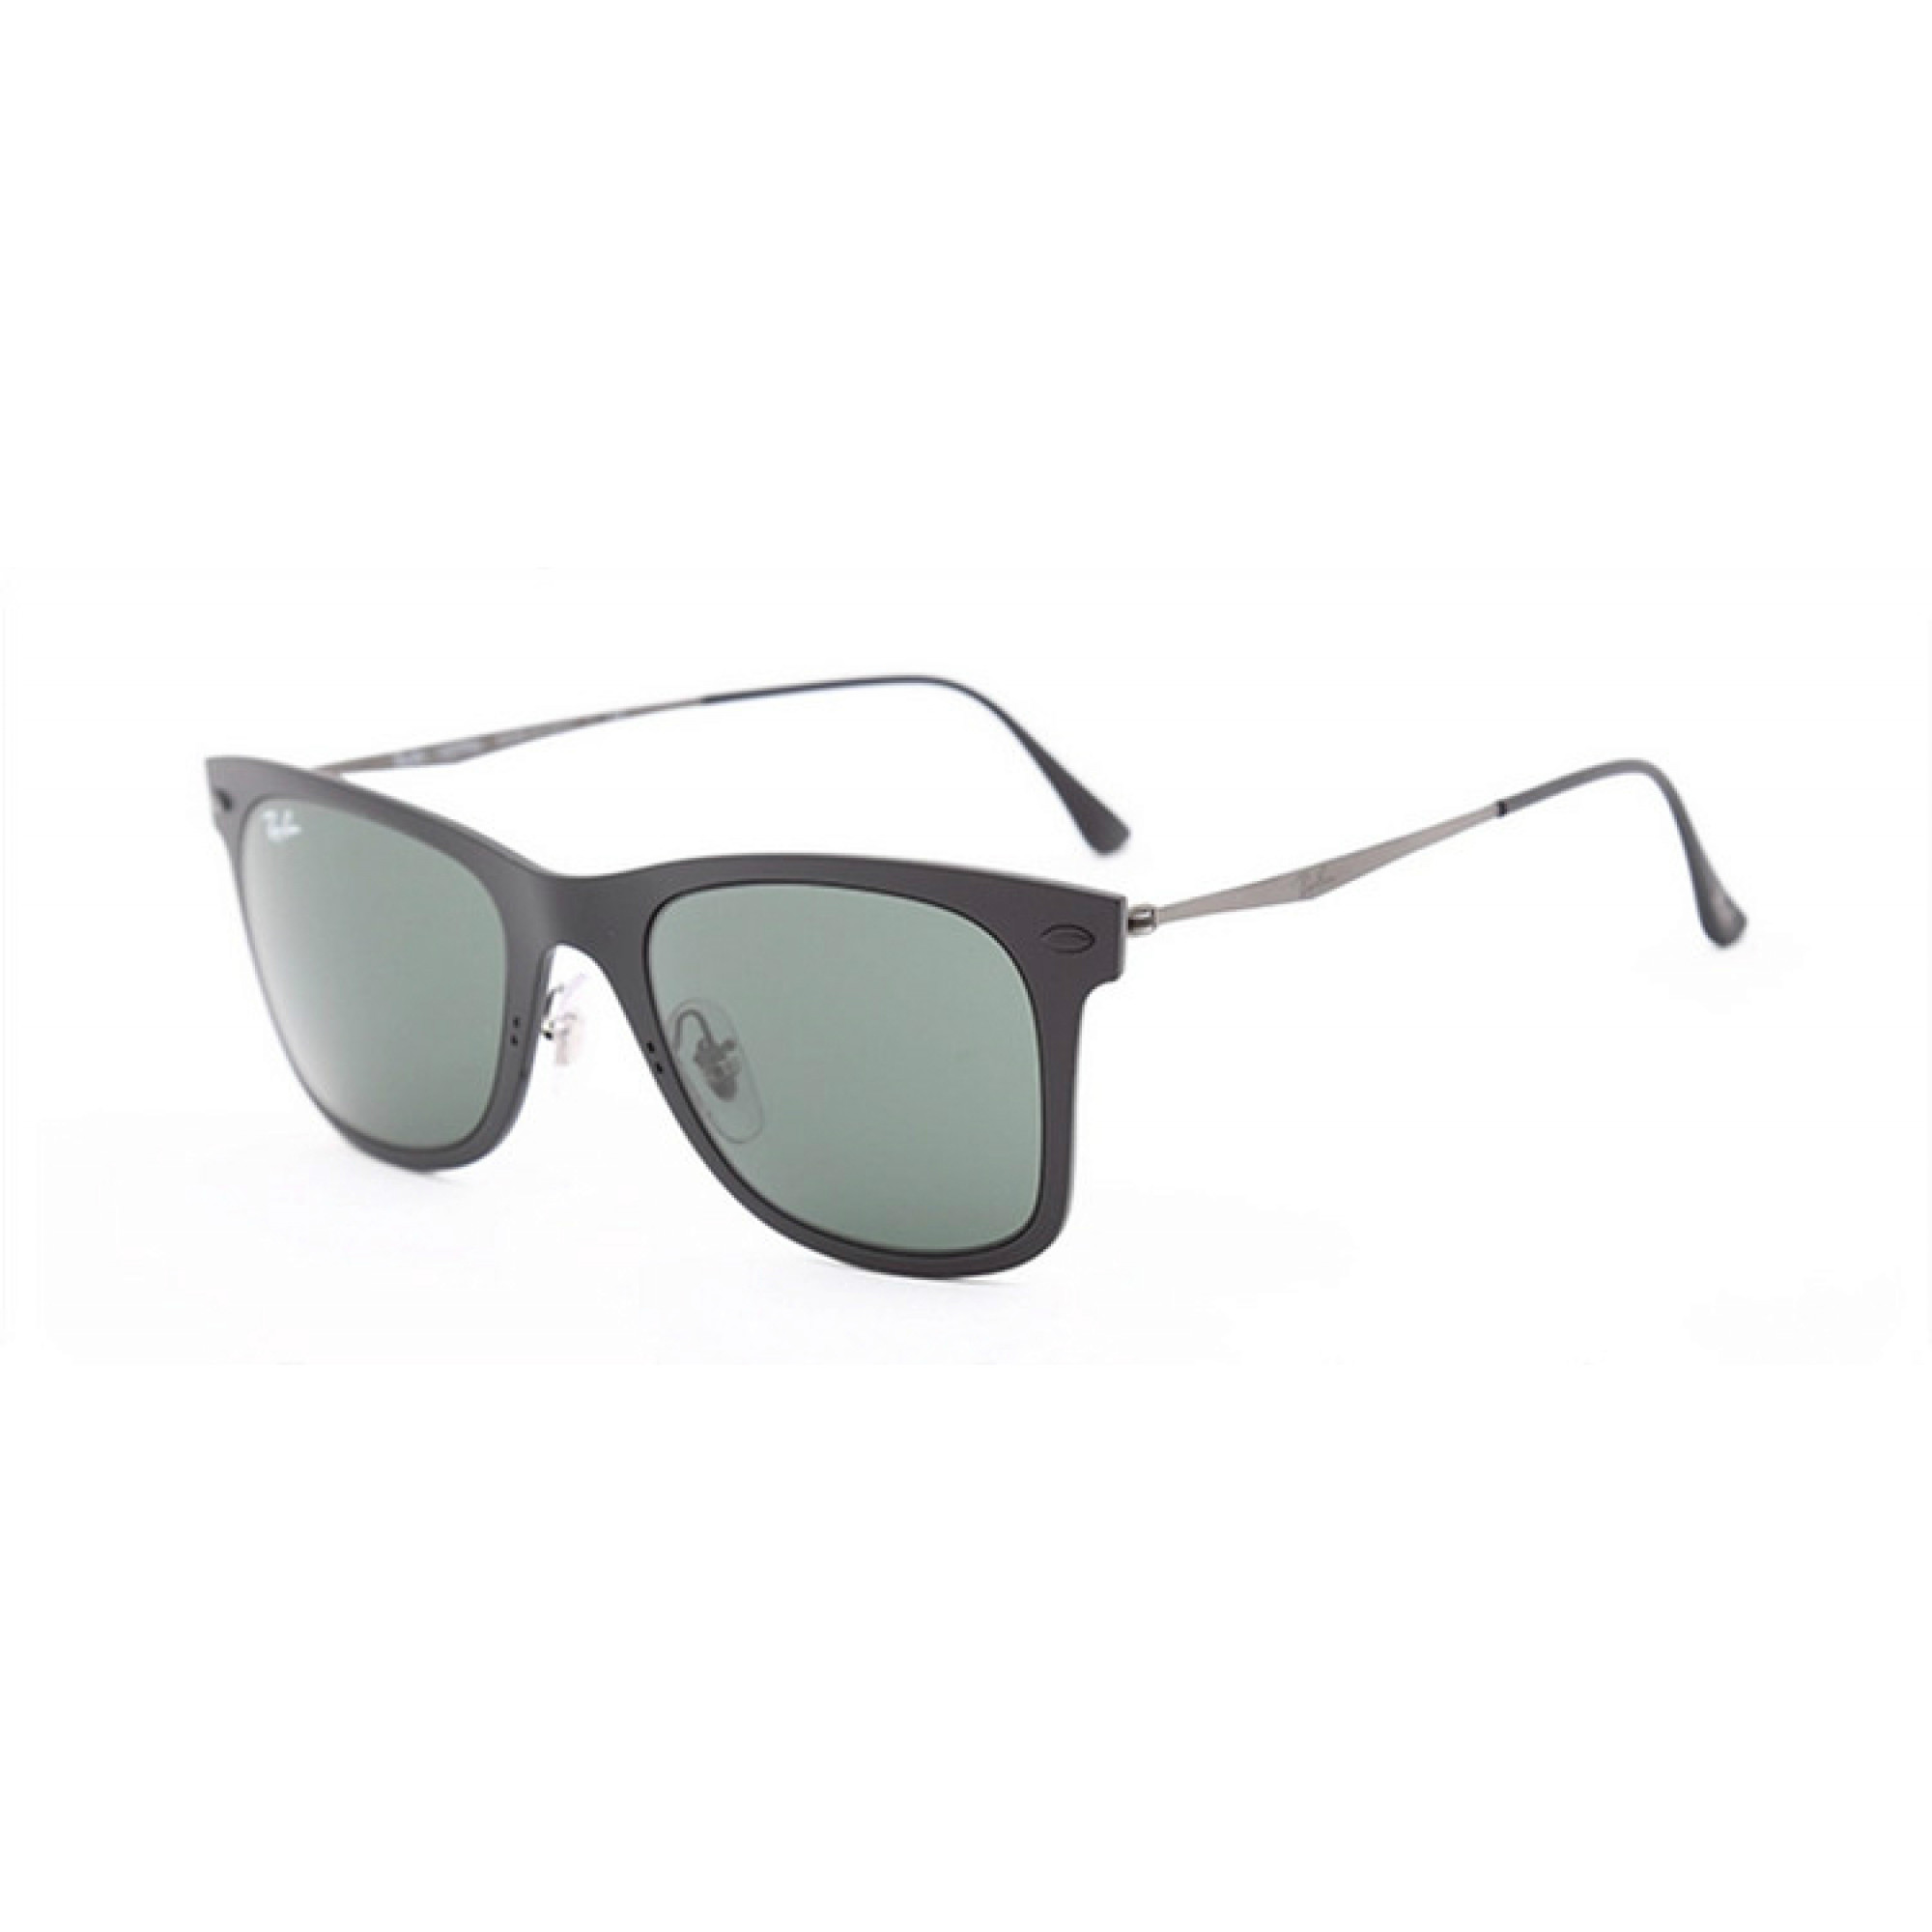 9871d26f6162 Ray Ban Rb5201 - Shabooms